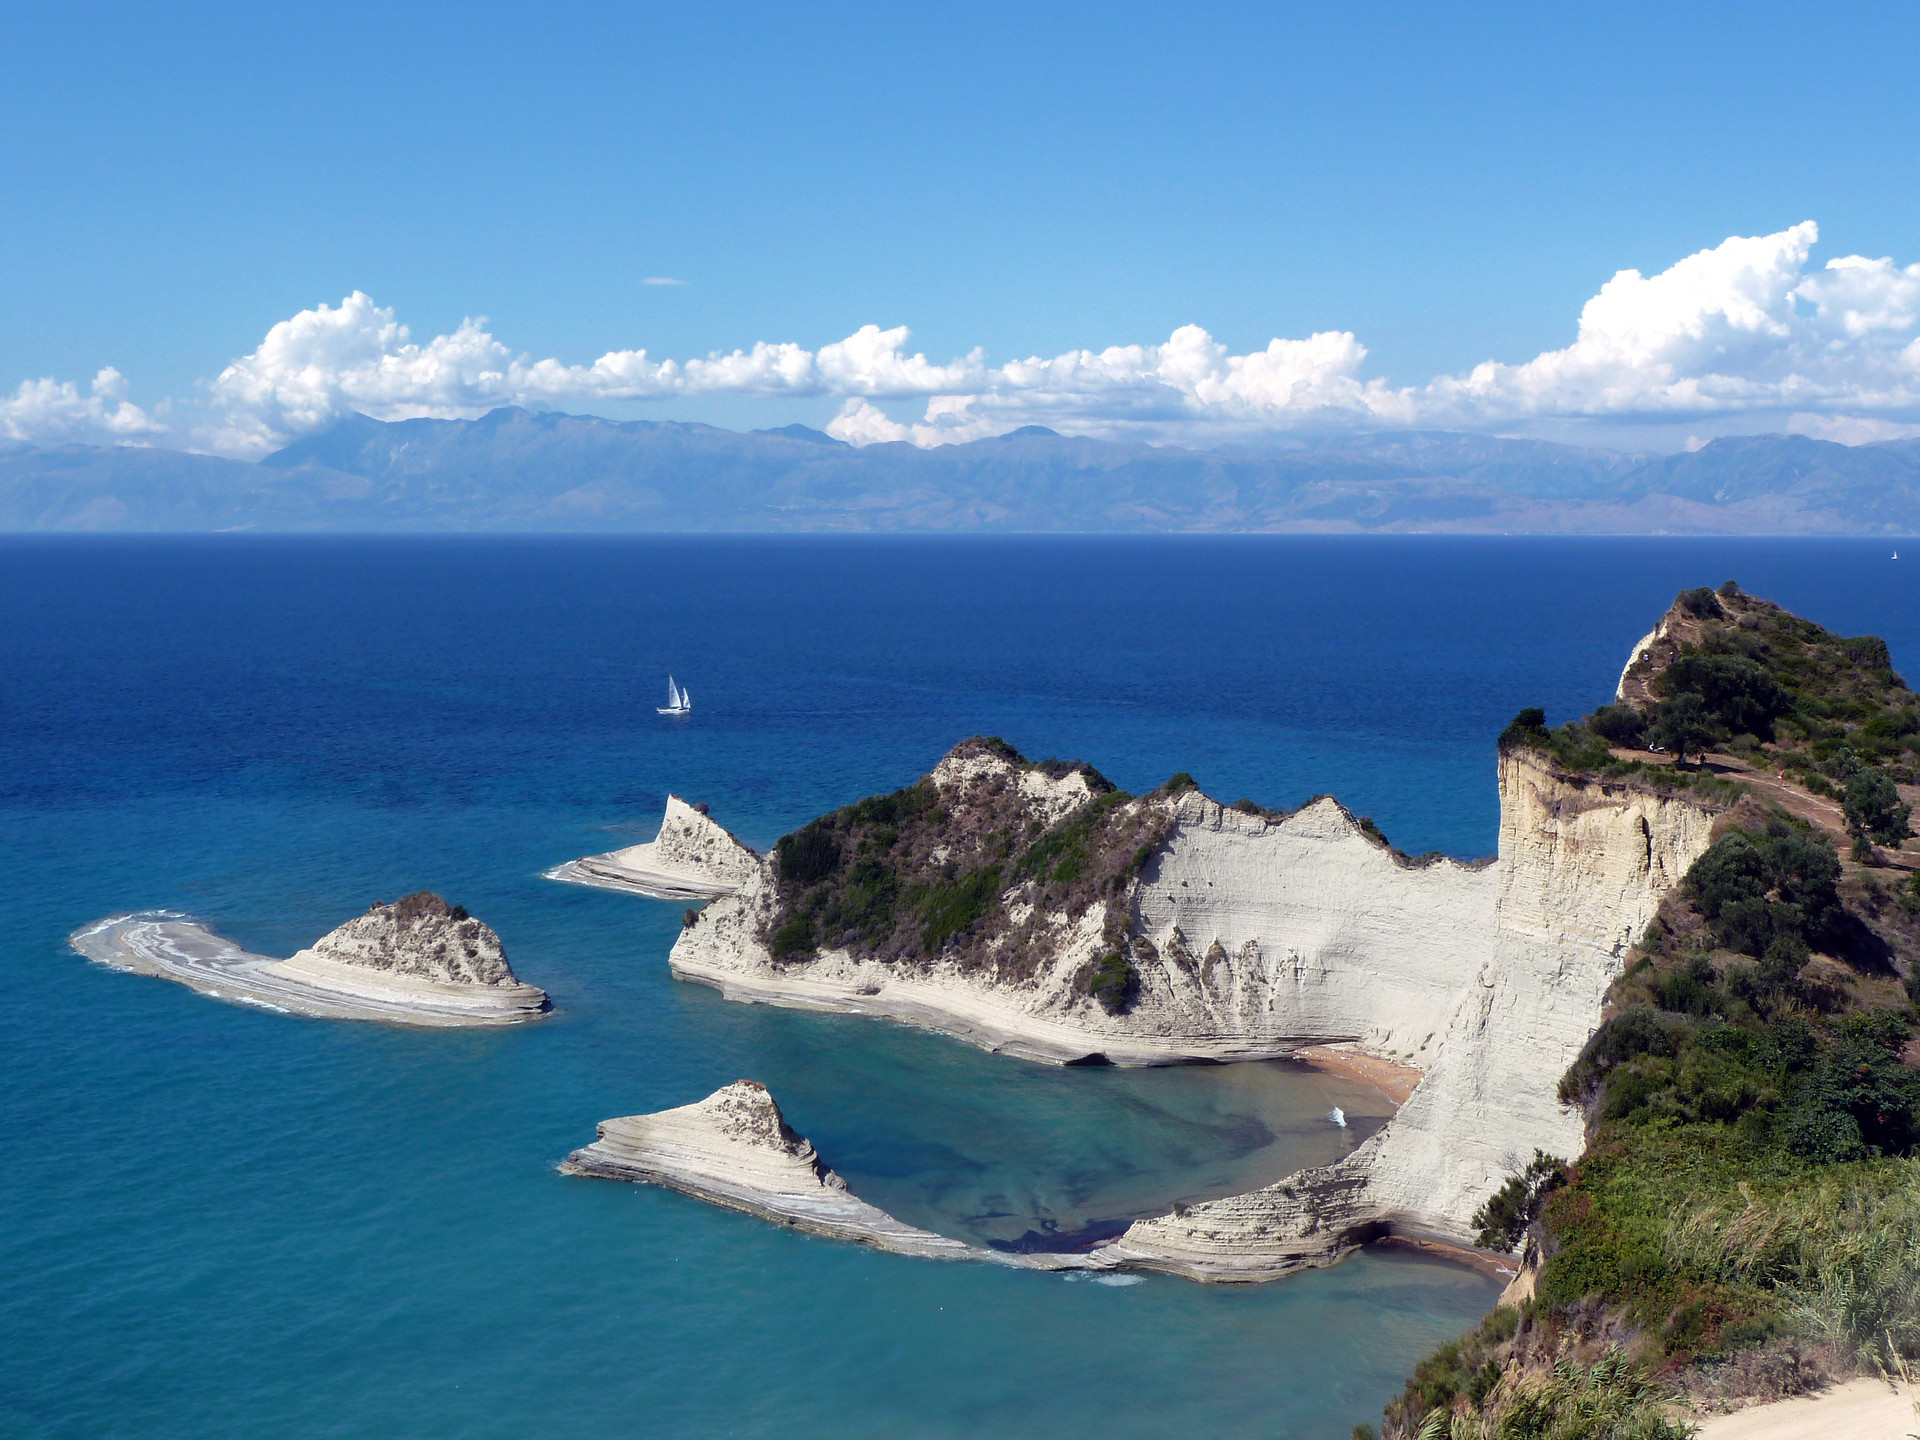 kerkira dating site Corfu | greece | mouzenidis group  olive and orange groves and green forests and rich history dating back to the ancient times kerkyra,  our site .